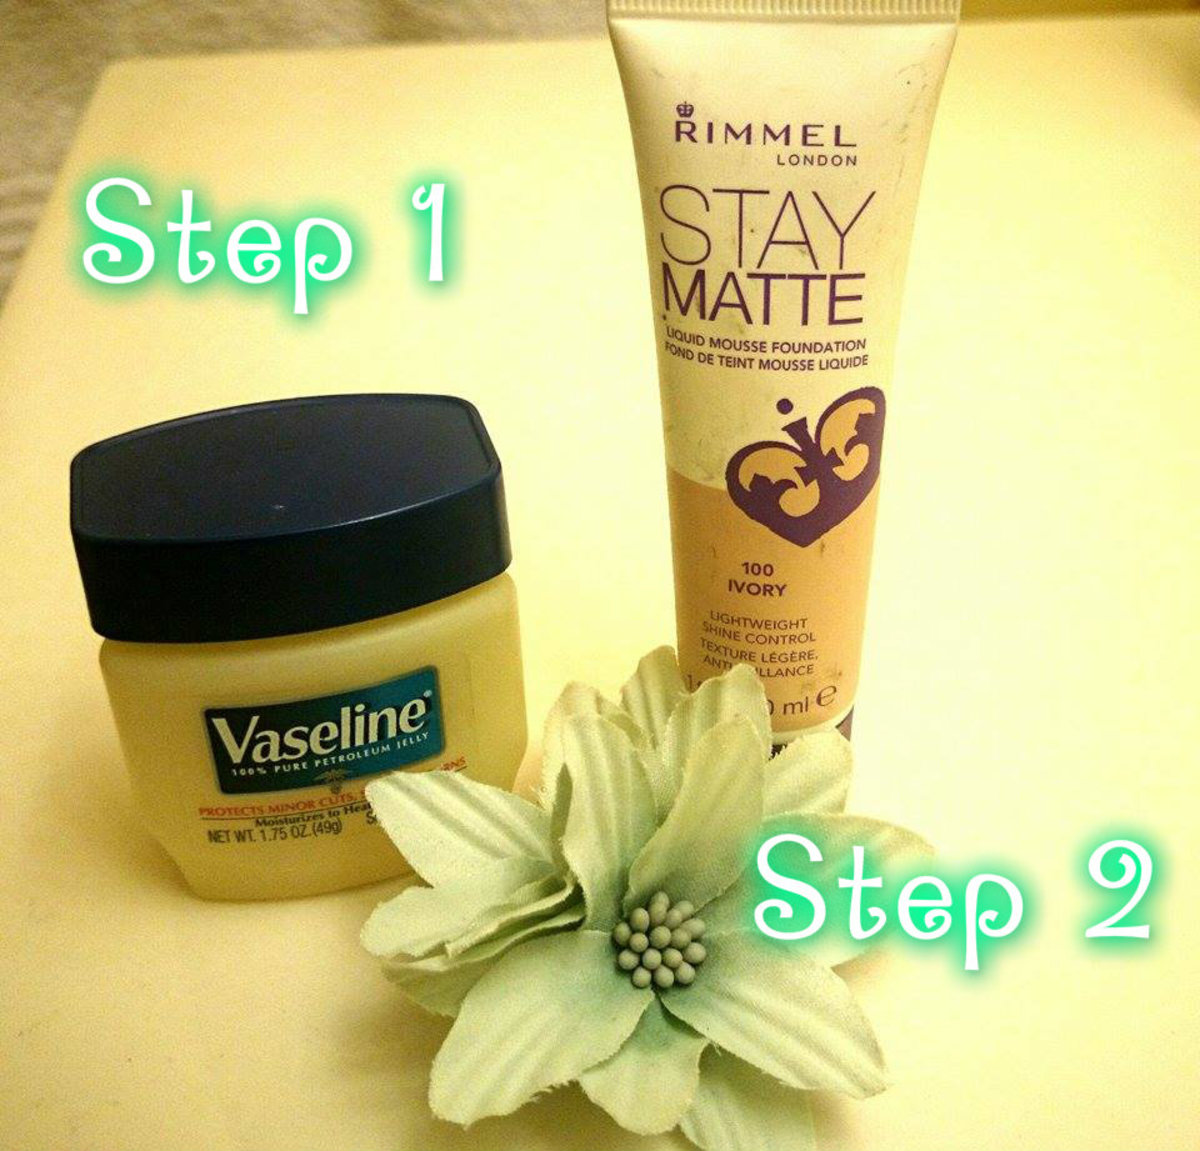 Apply Vaseline before foundation as a primer to smooth the look of pores